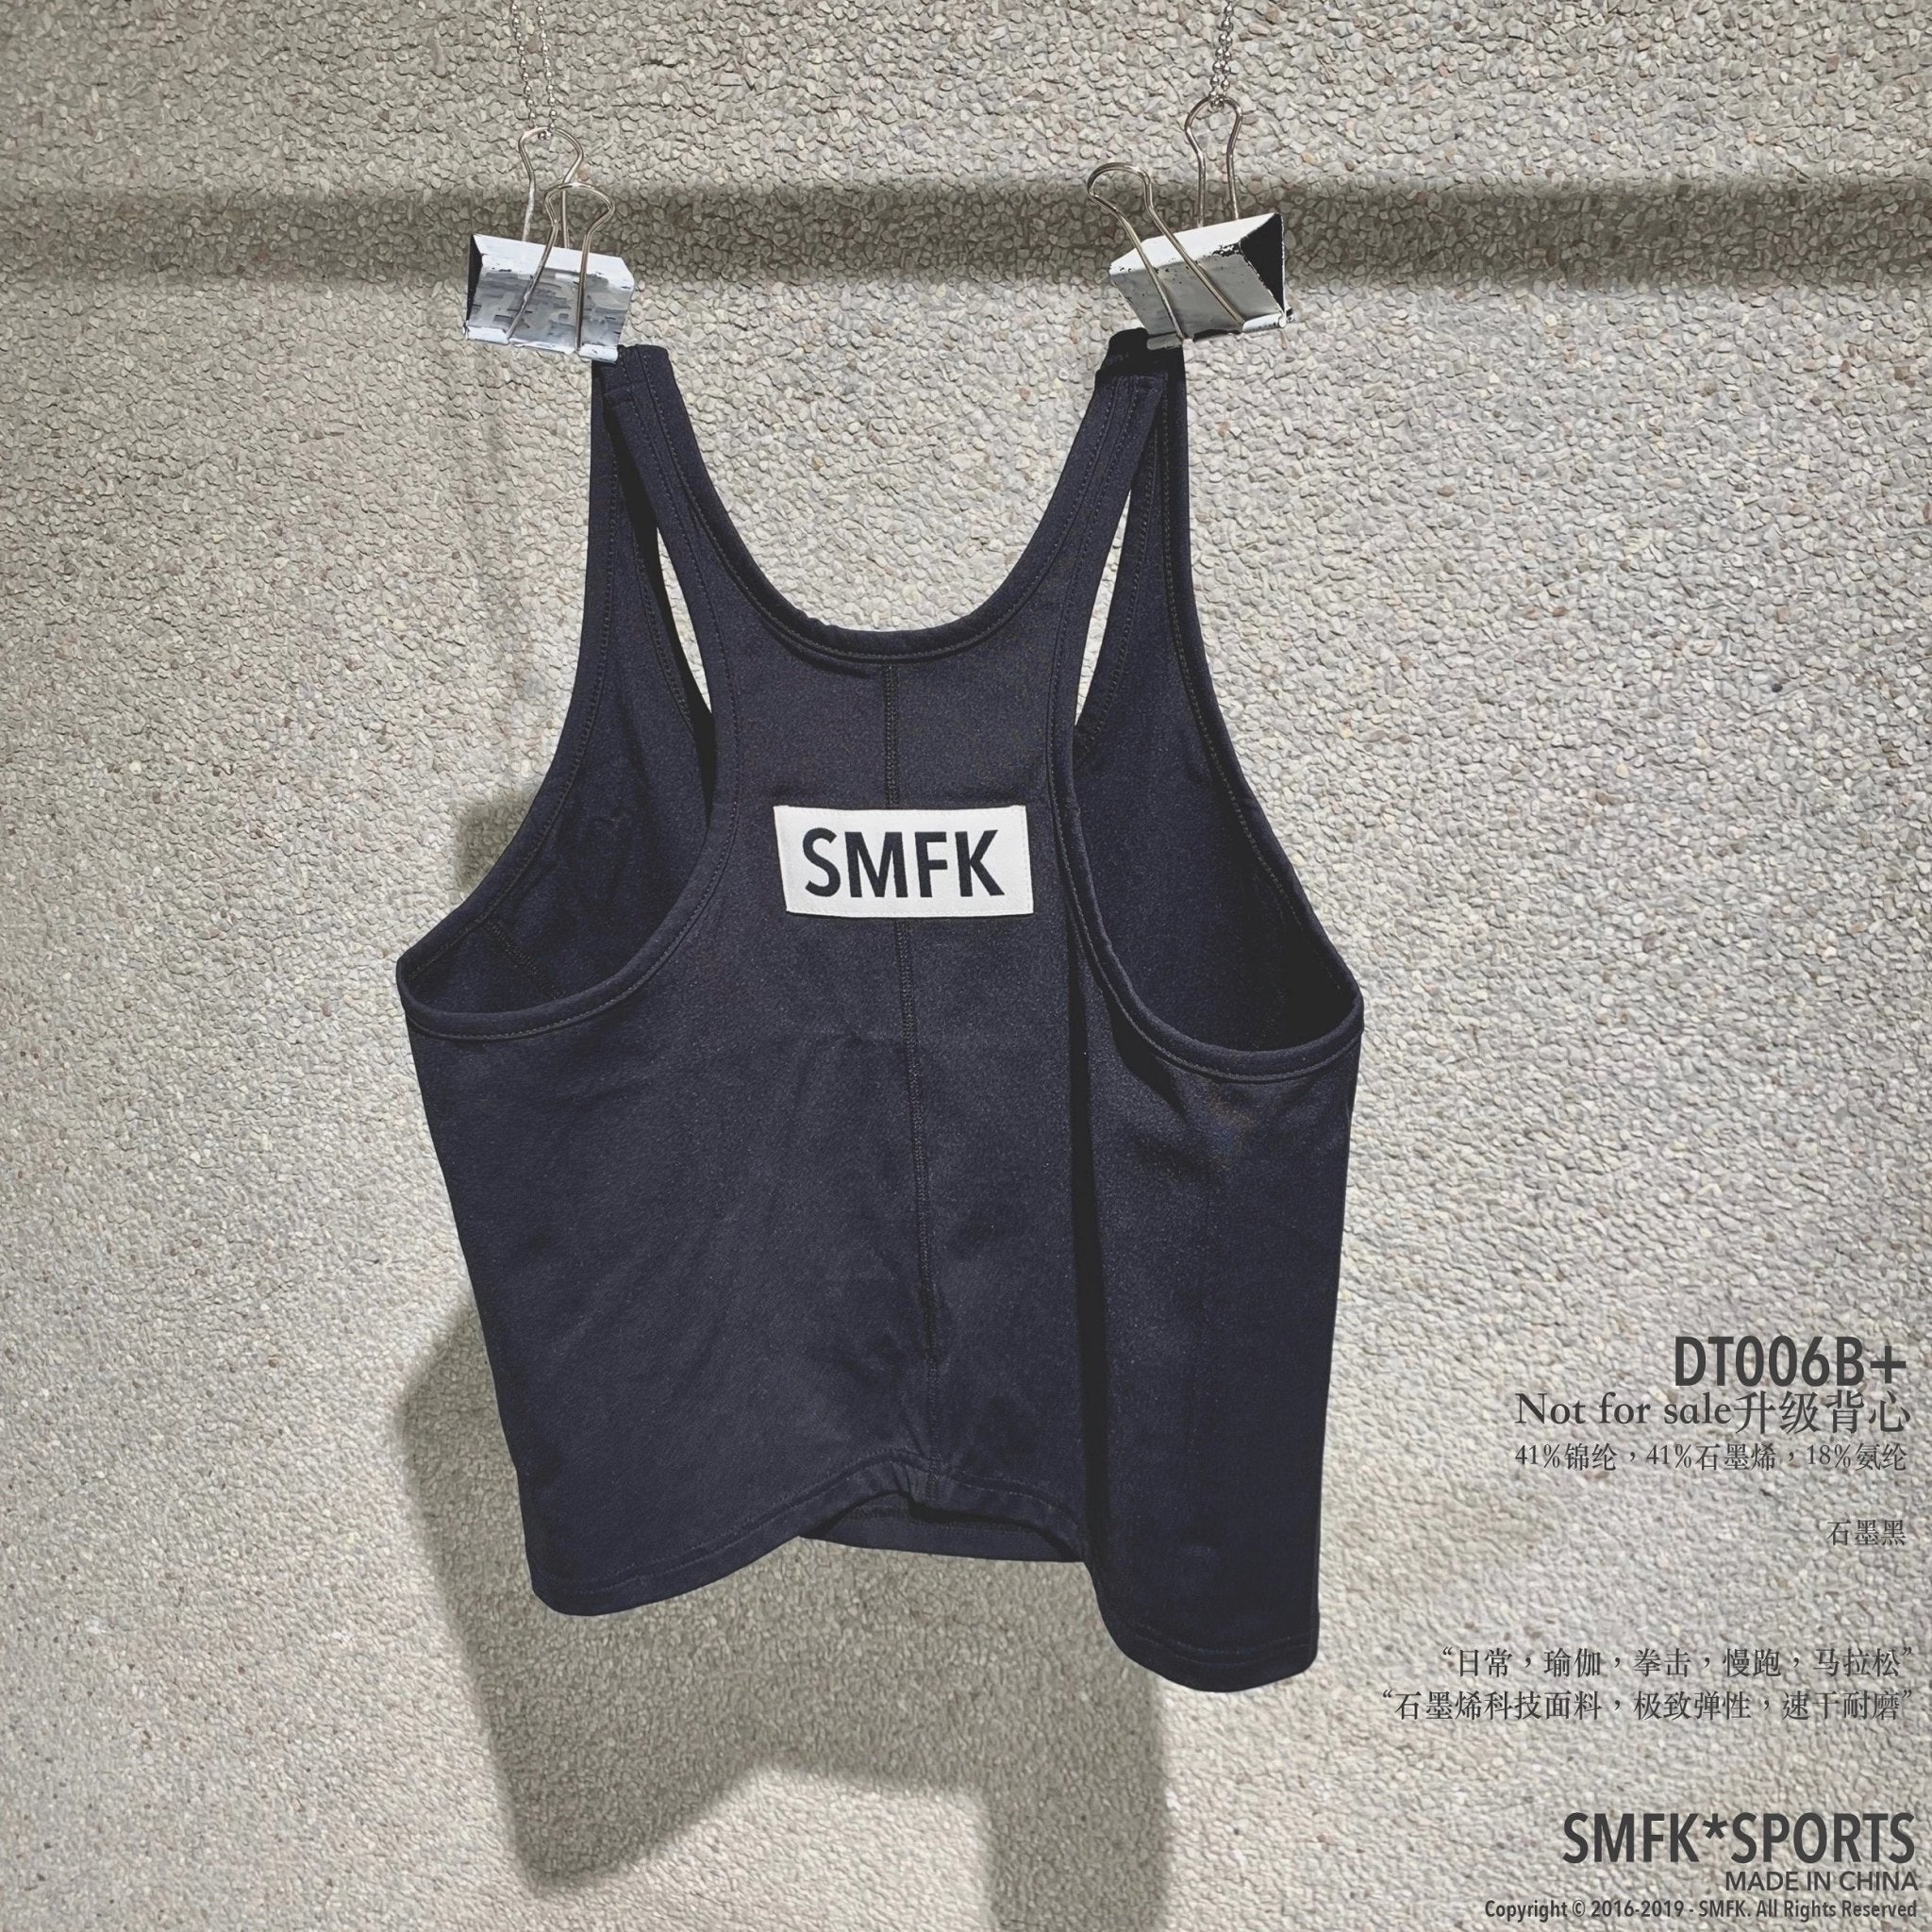 SMFK New 'Not For Sale' Vest | MADA IN CHINA